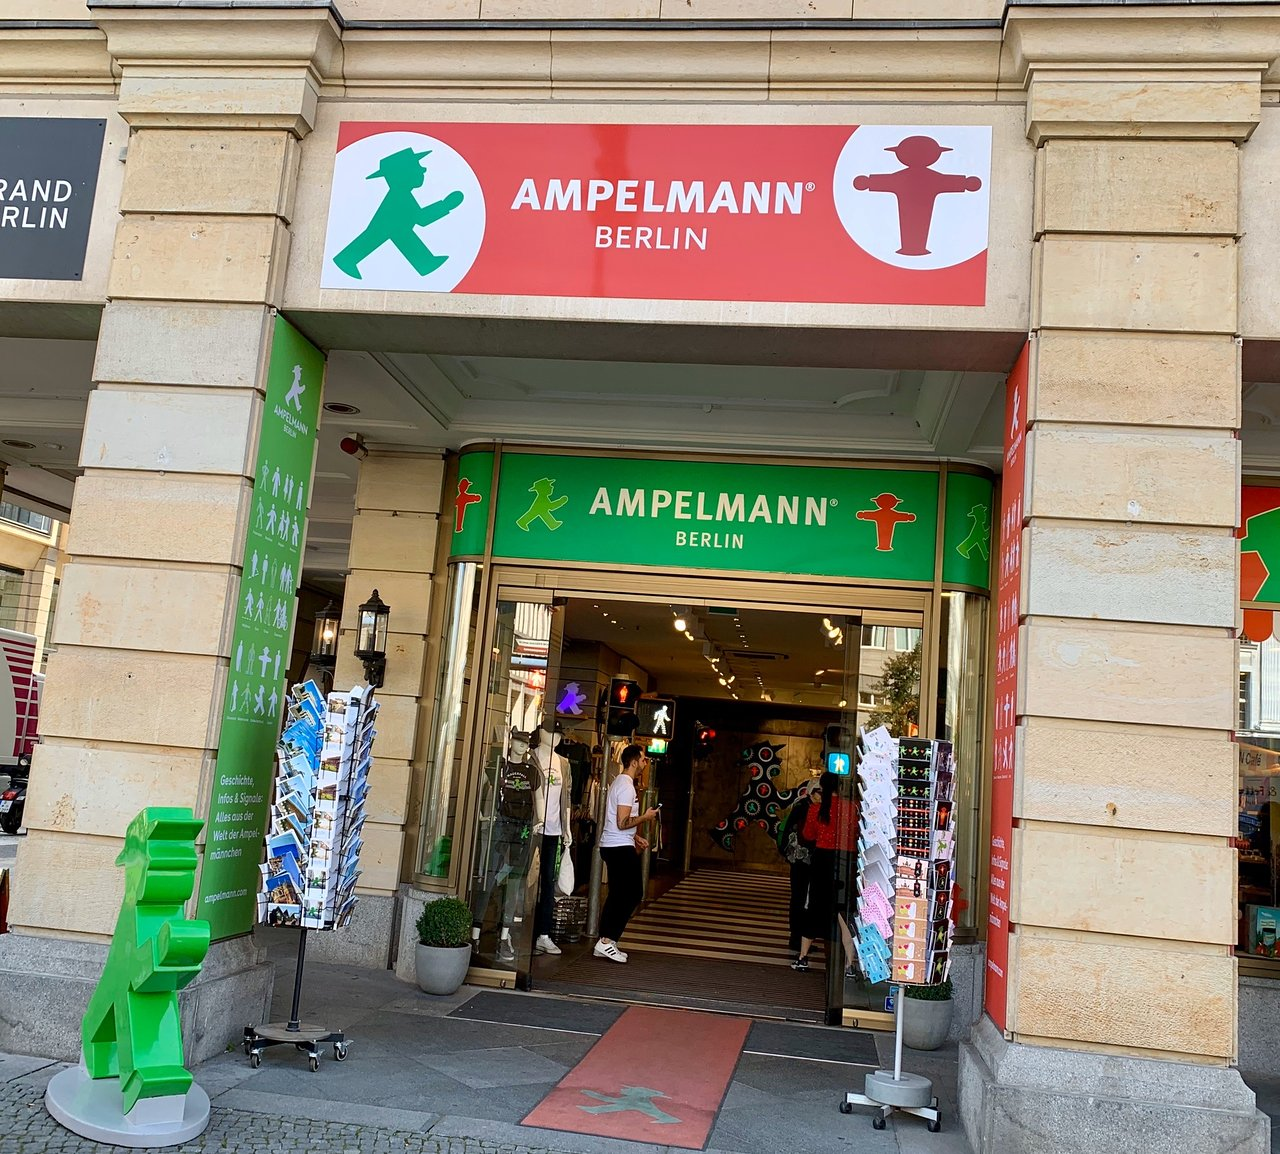 Ampelmann Shop Berlin 2020 All You Need To Know Before You Go